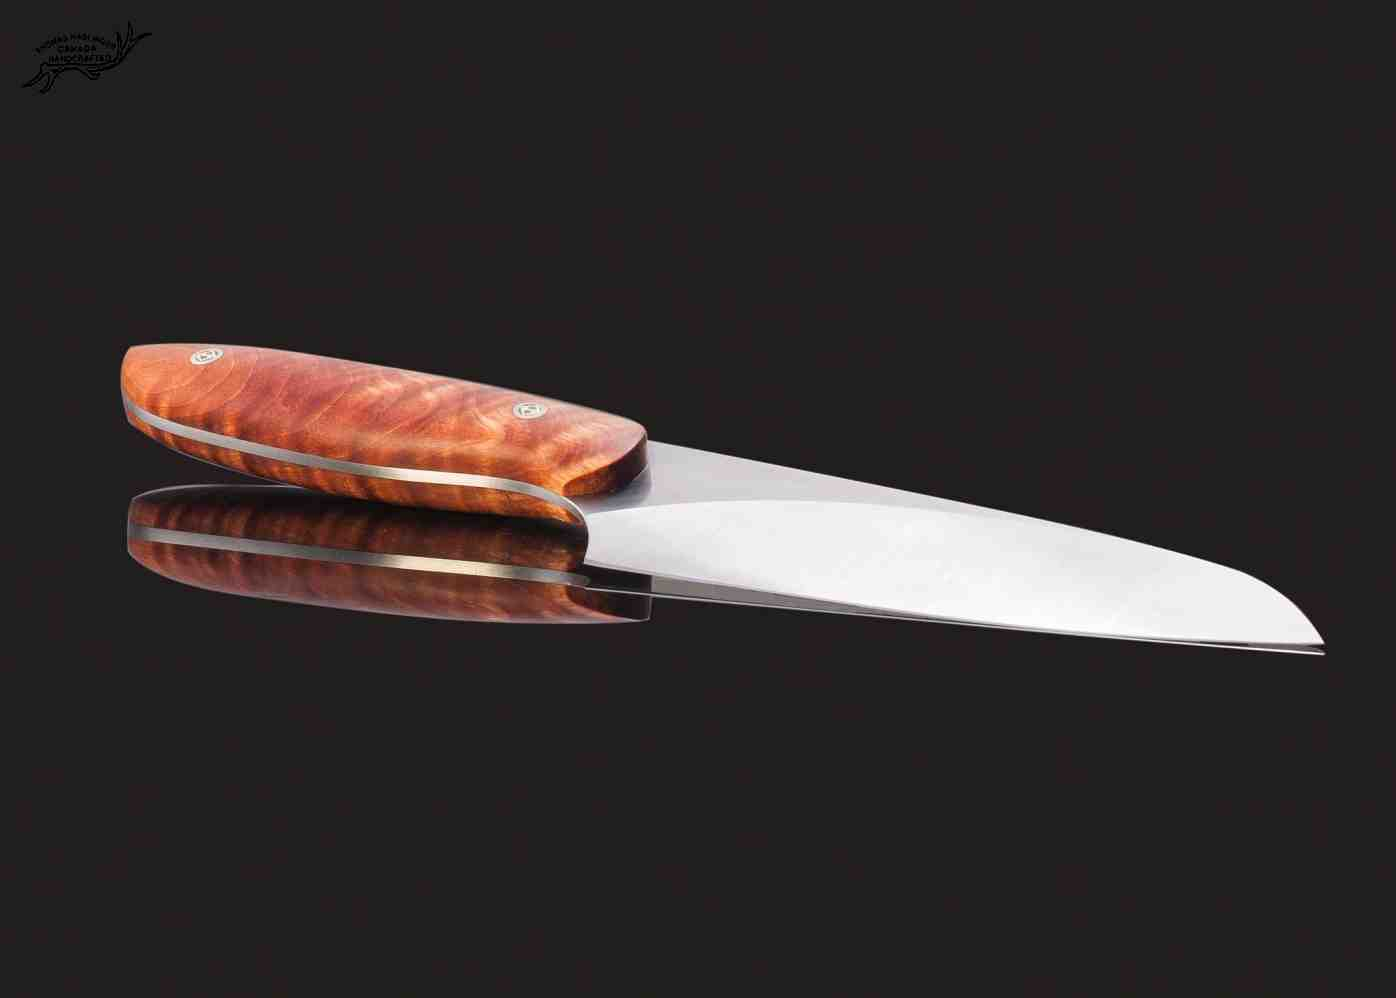 Evolution Chef Knife 142 mm Blade with Blond Maple Root Burl Handle other view